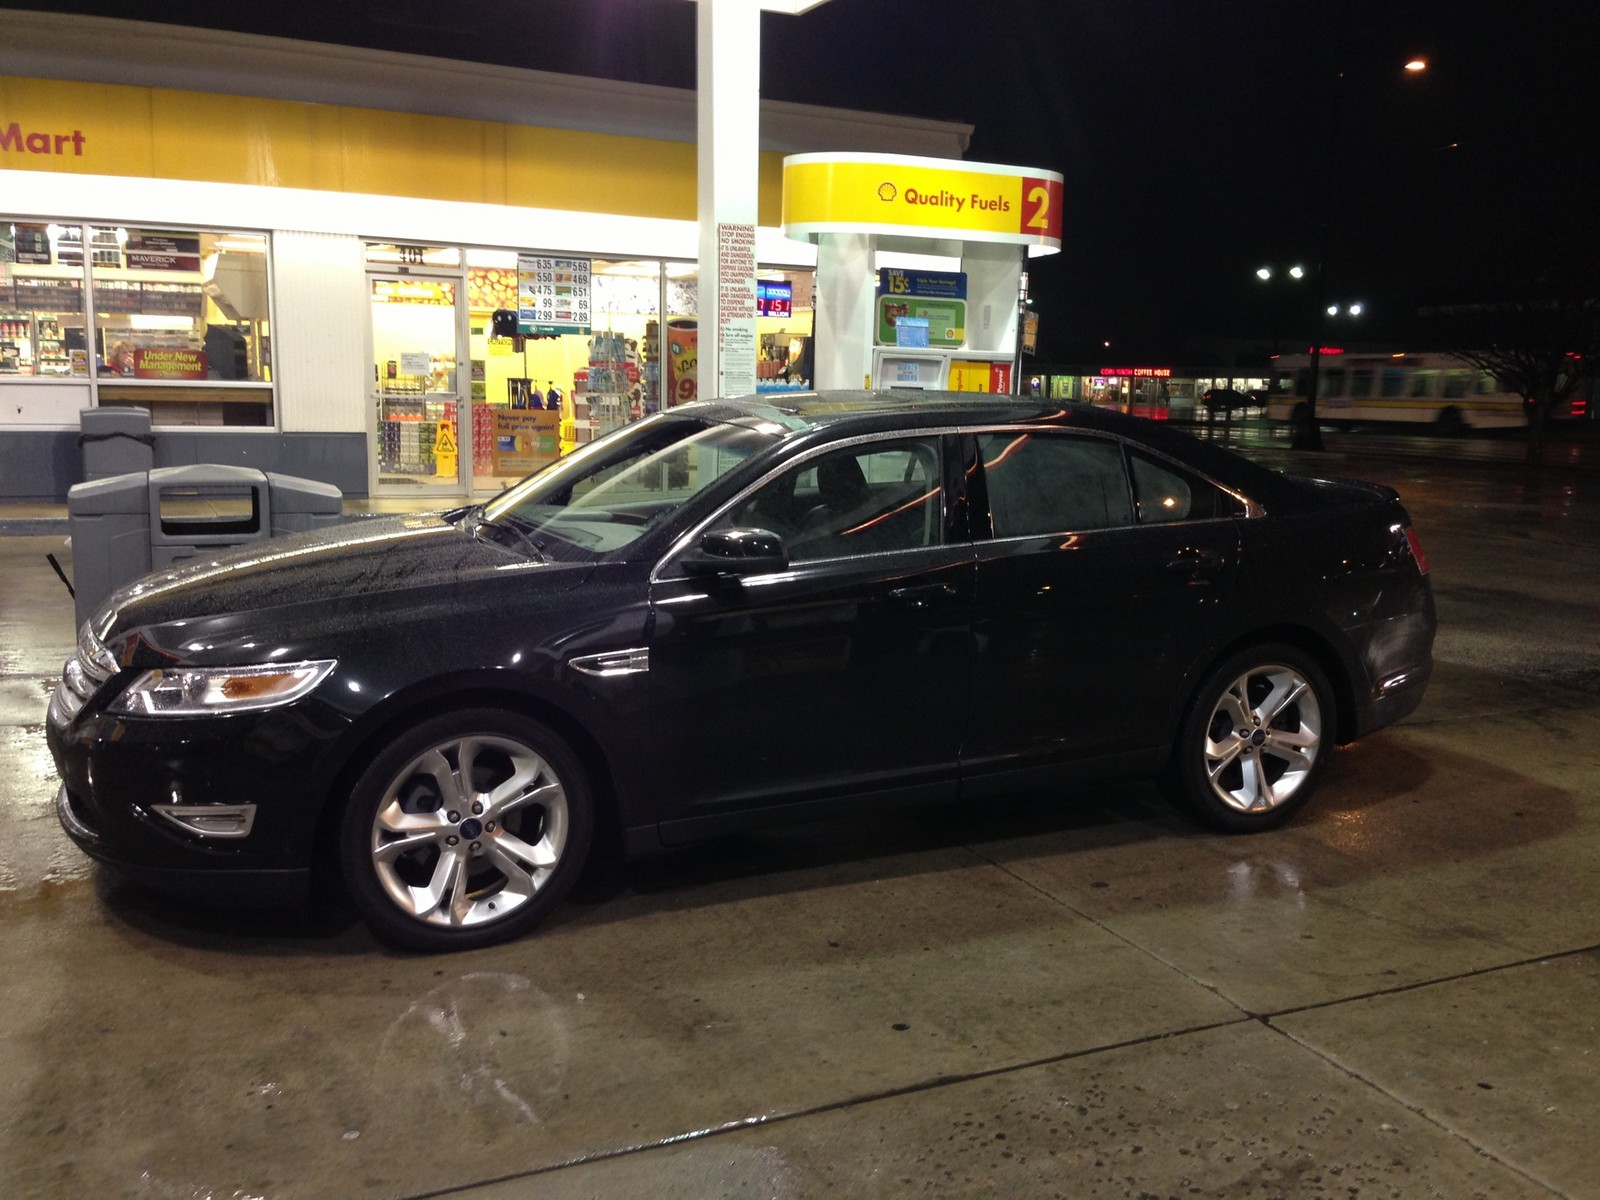 2010 tuxedo black ford taurus sho picture mods upgrades